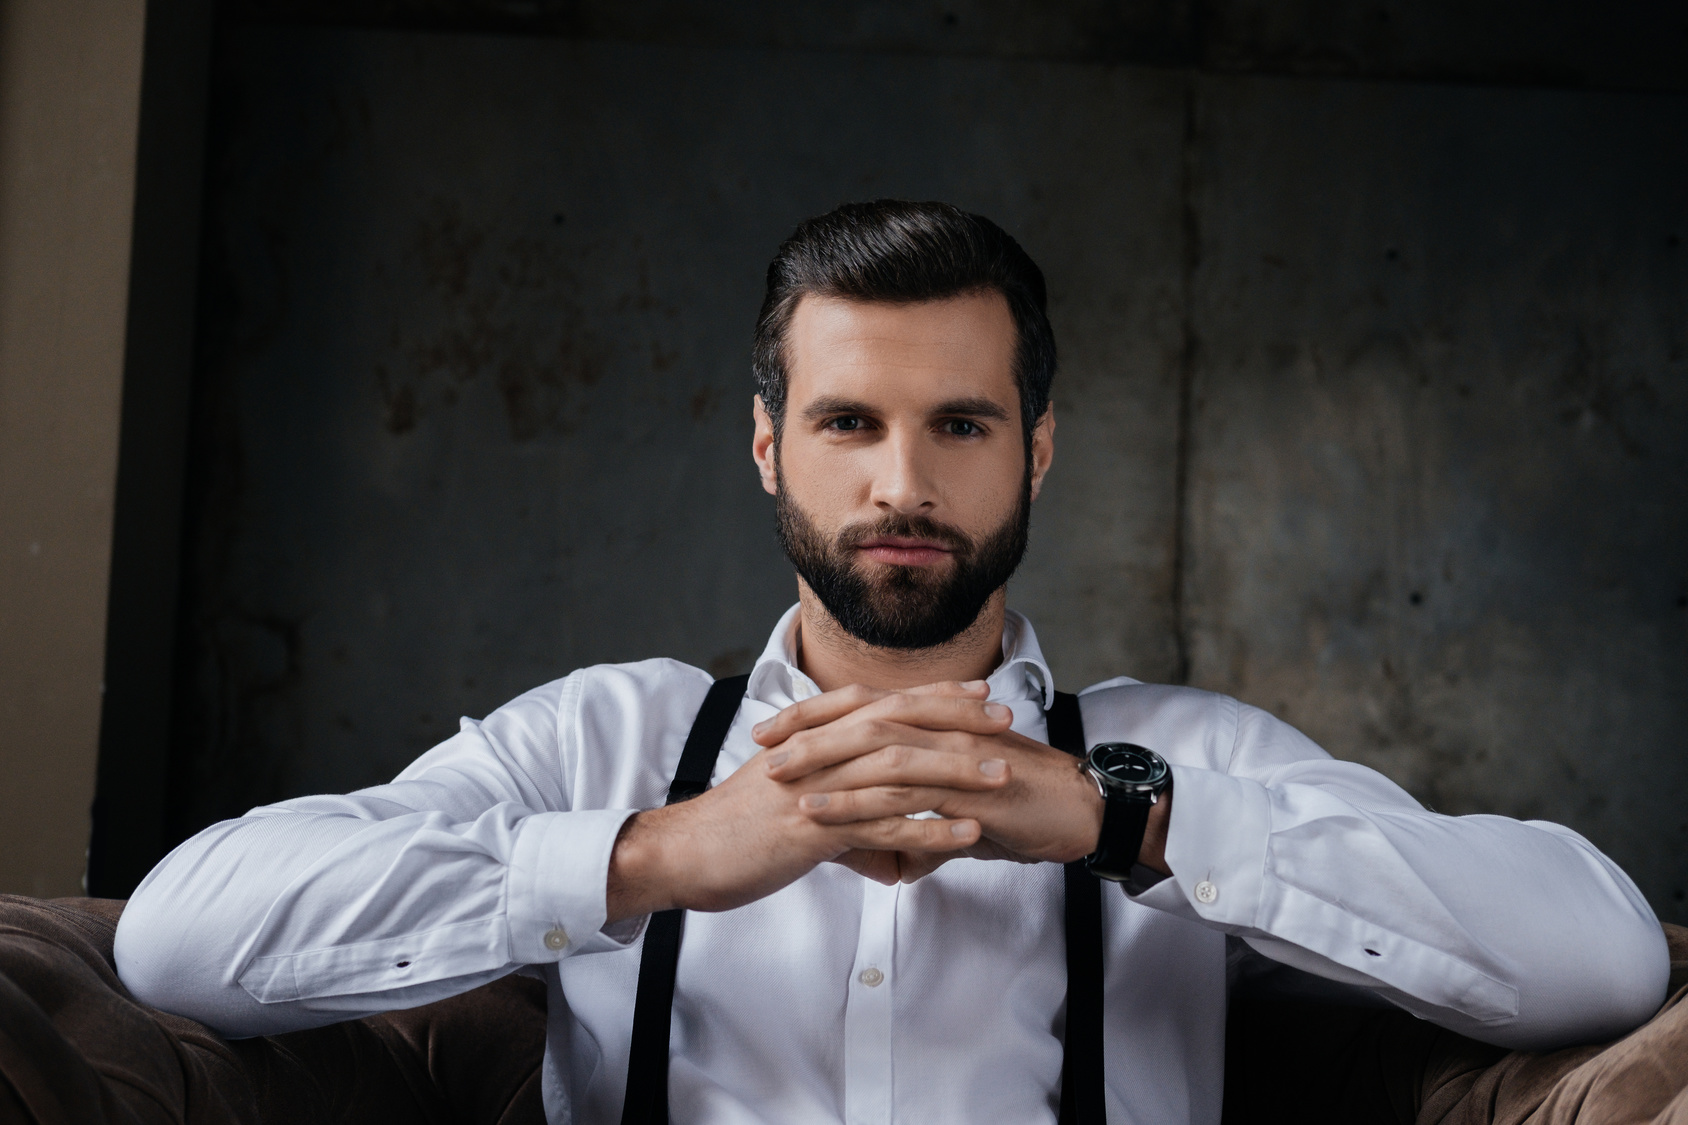 Top 3 Bad Habits in Grooming That Men Should Absolutely Avoid